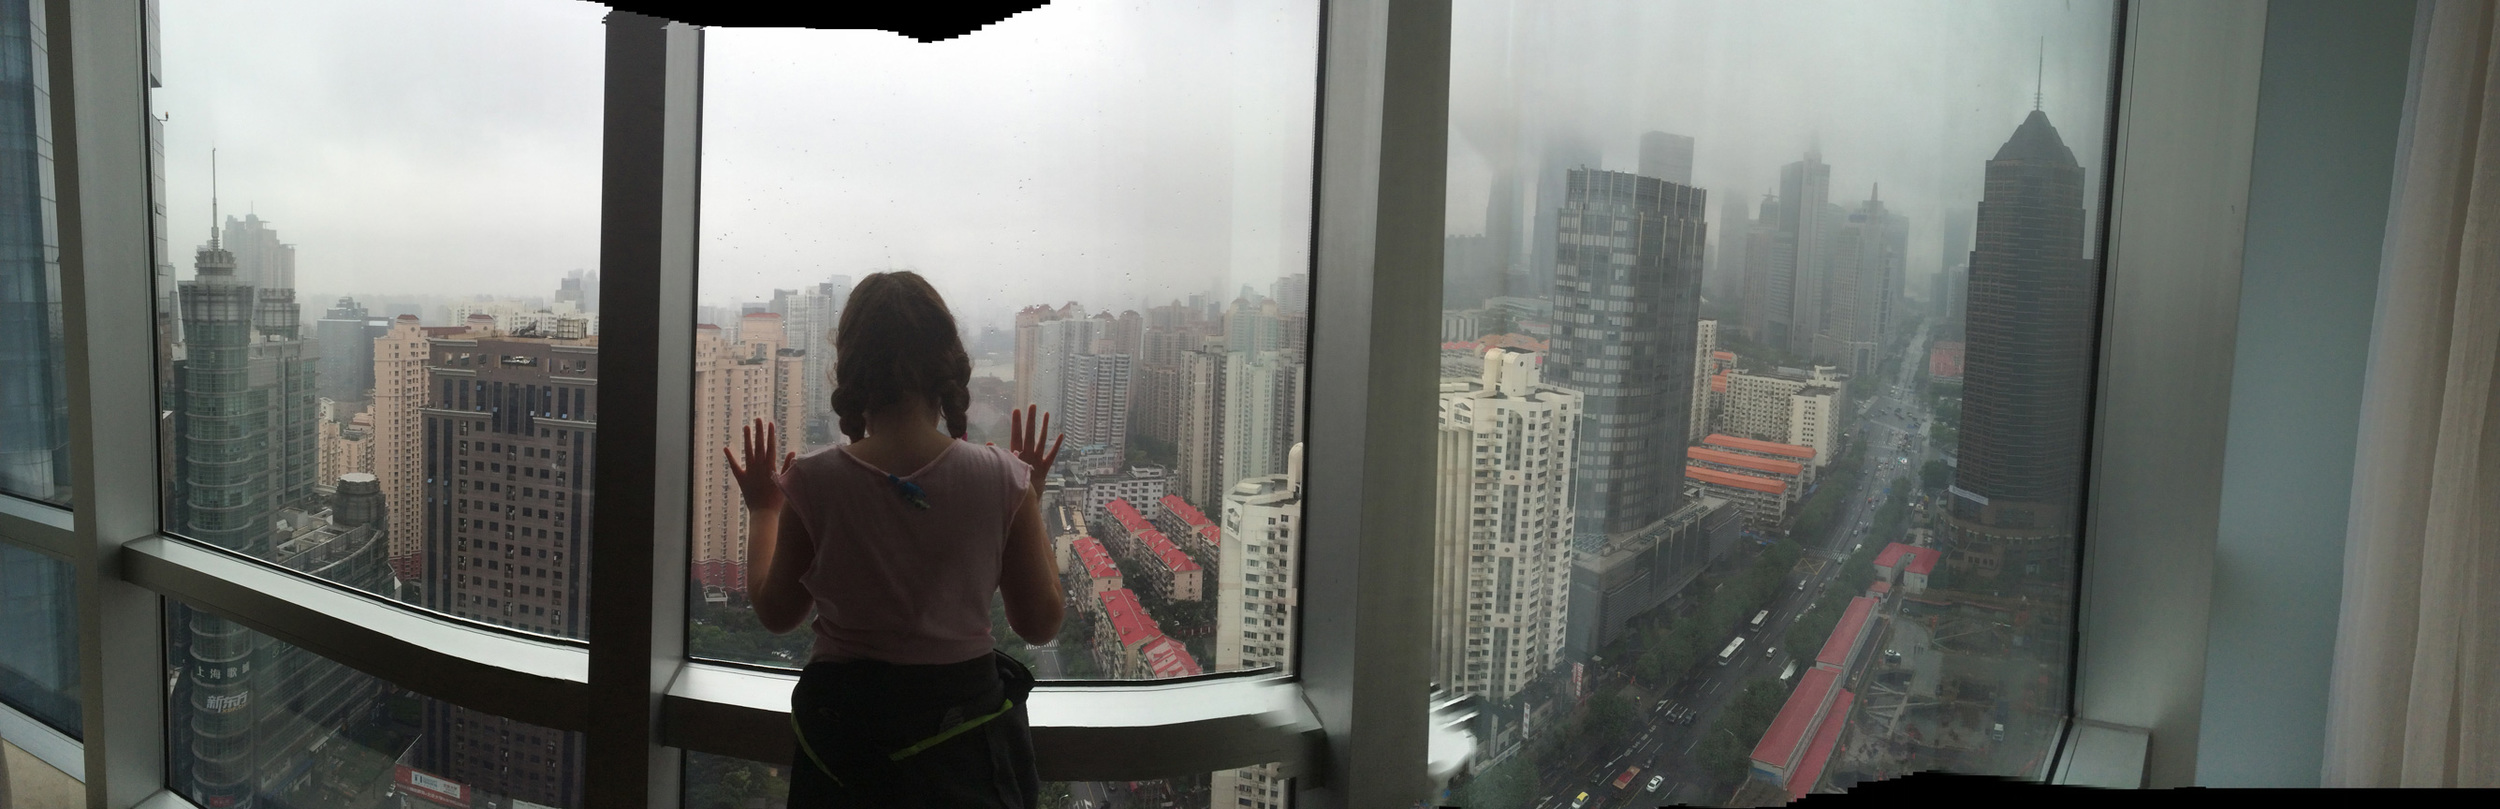 Lucy contemplates the view of Shanghai